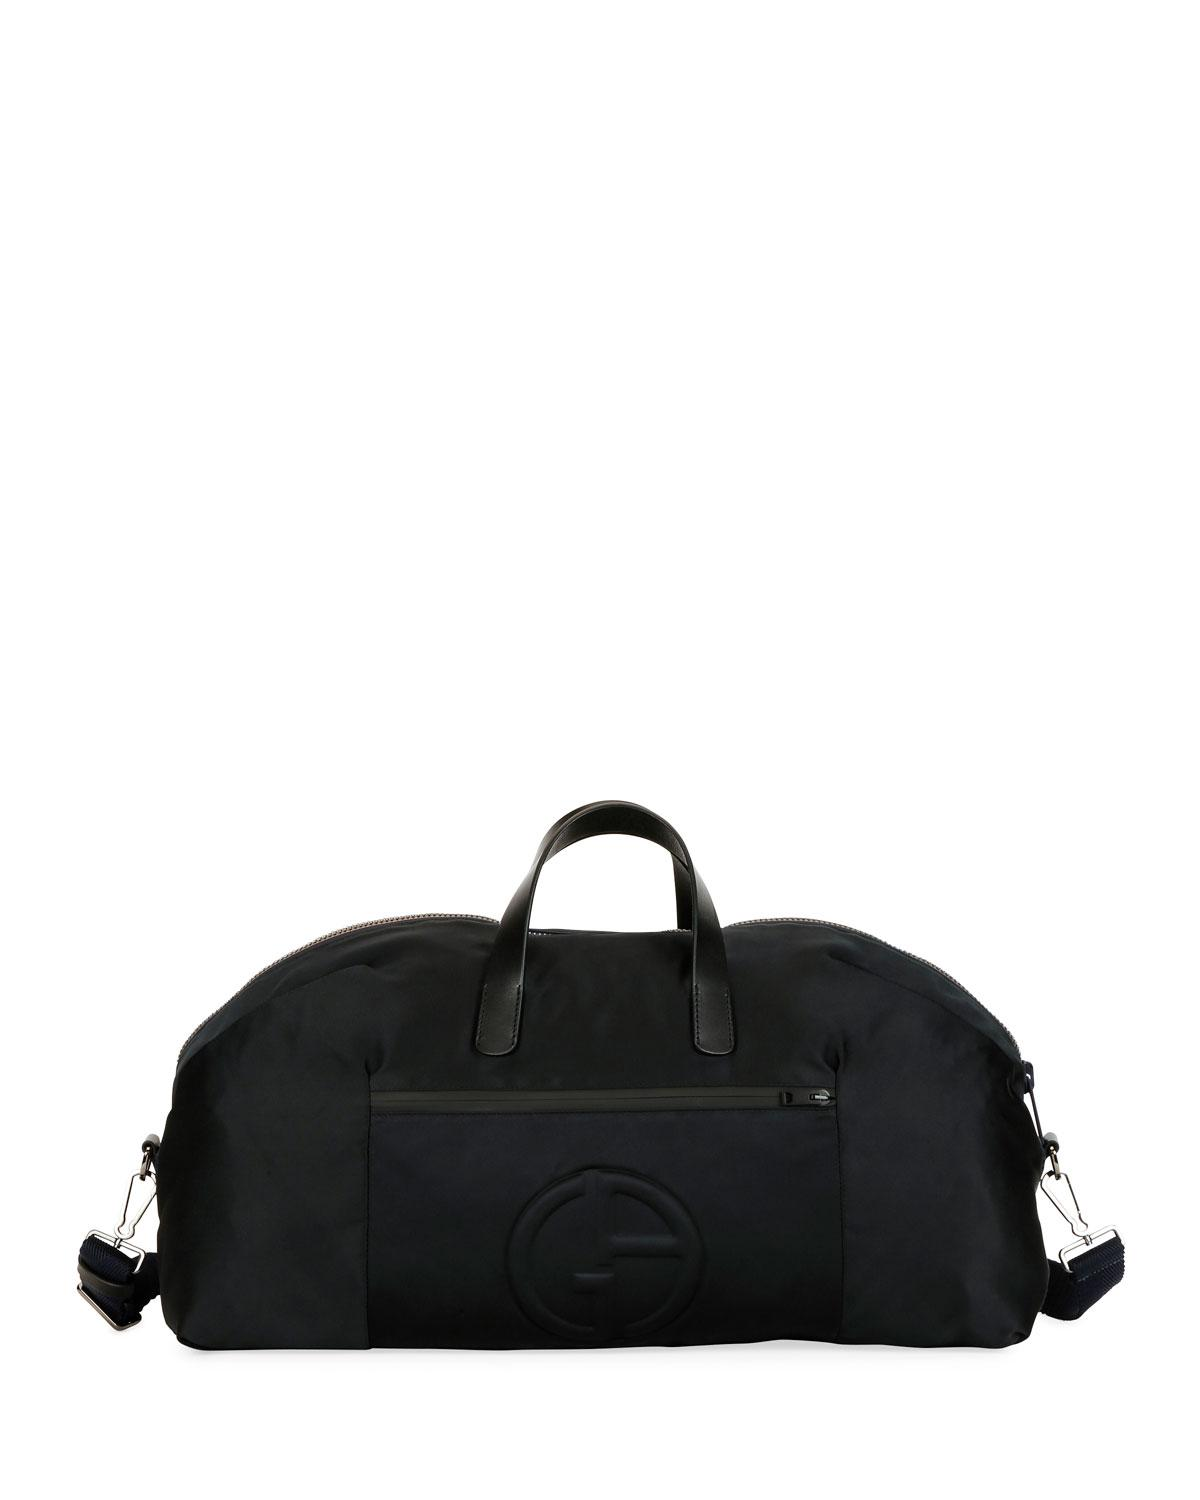 c06ecb7c6cce Lyst - Giorgio Armani Men s Nylon Carryall Duffel Bag in Black for Men